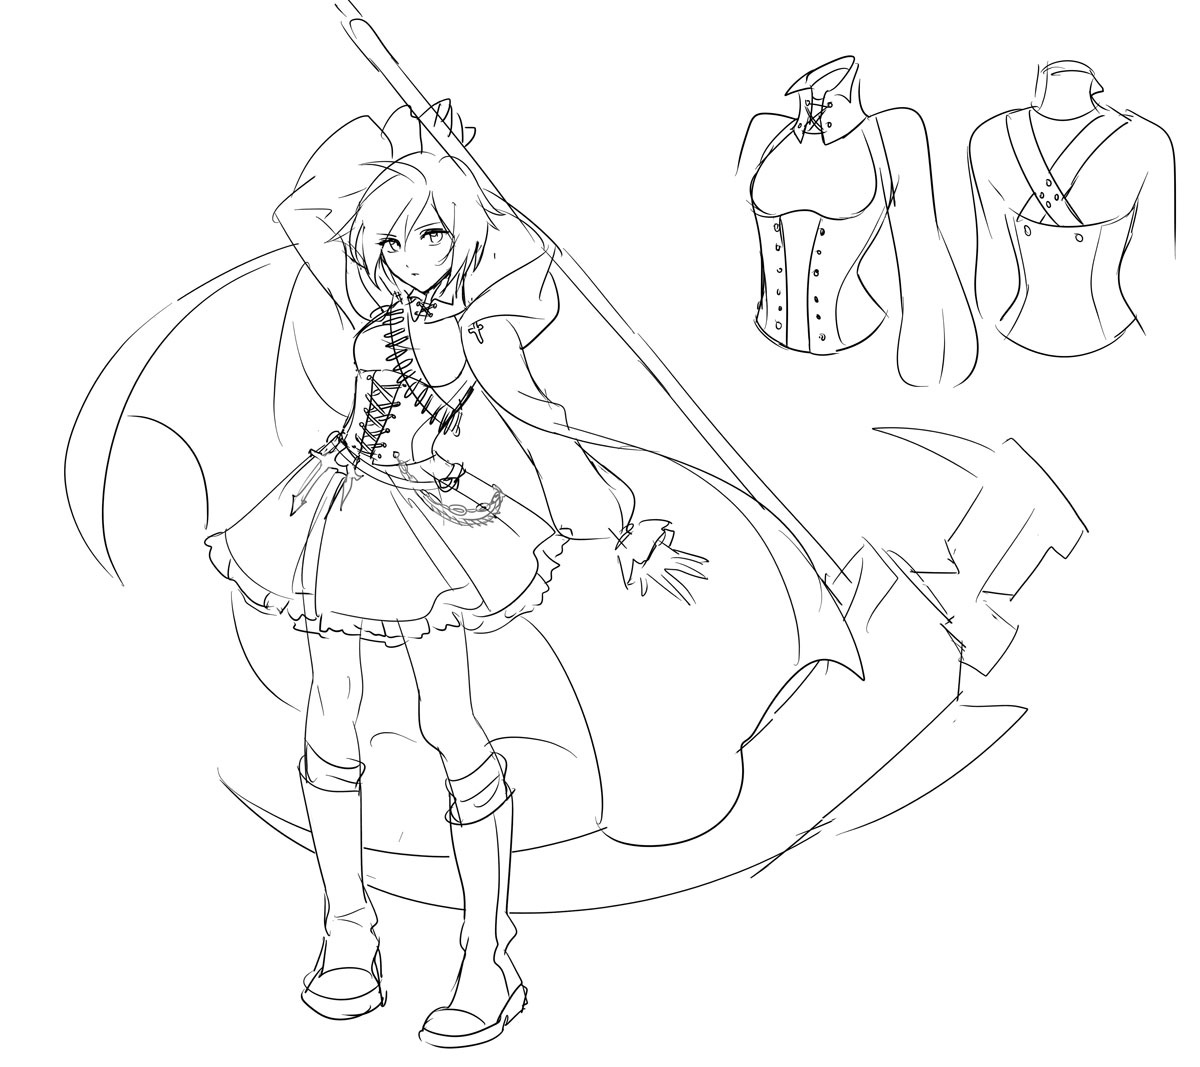 Rooster Teeth Productions Presents Rwby Concept Art By Ein